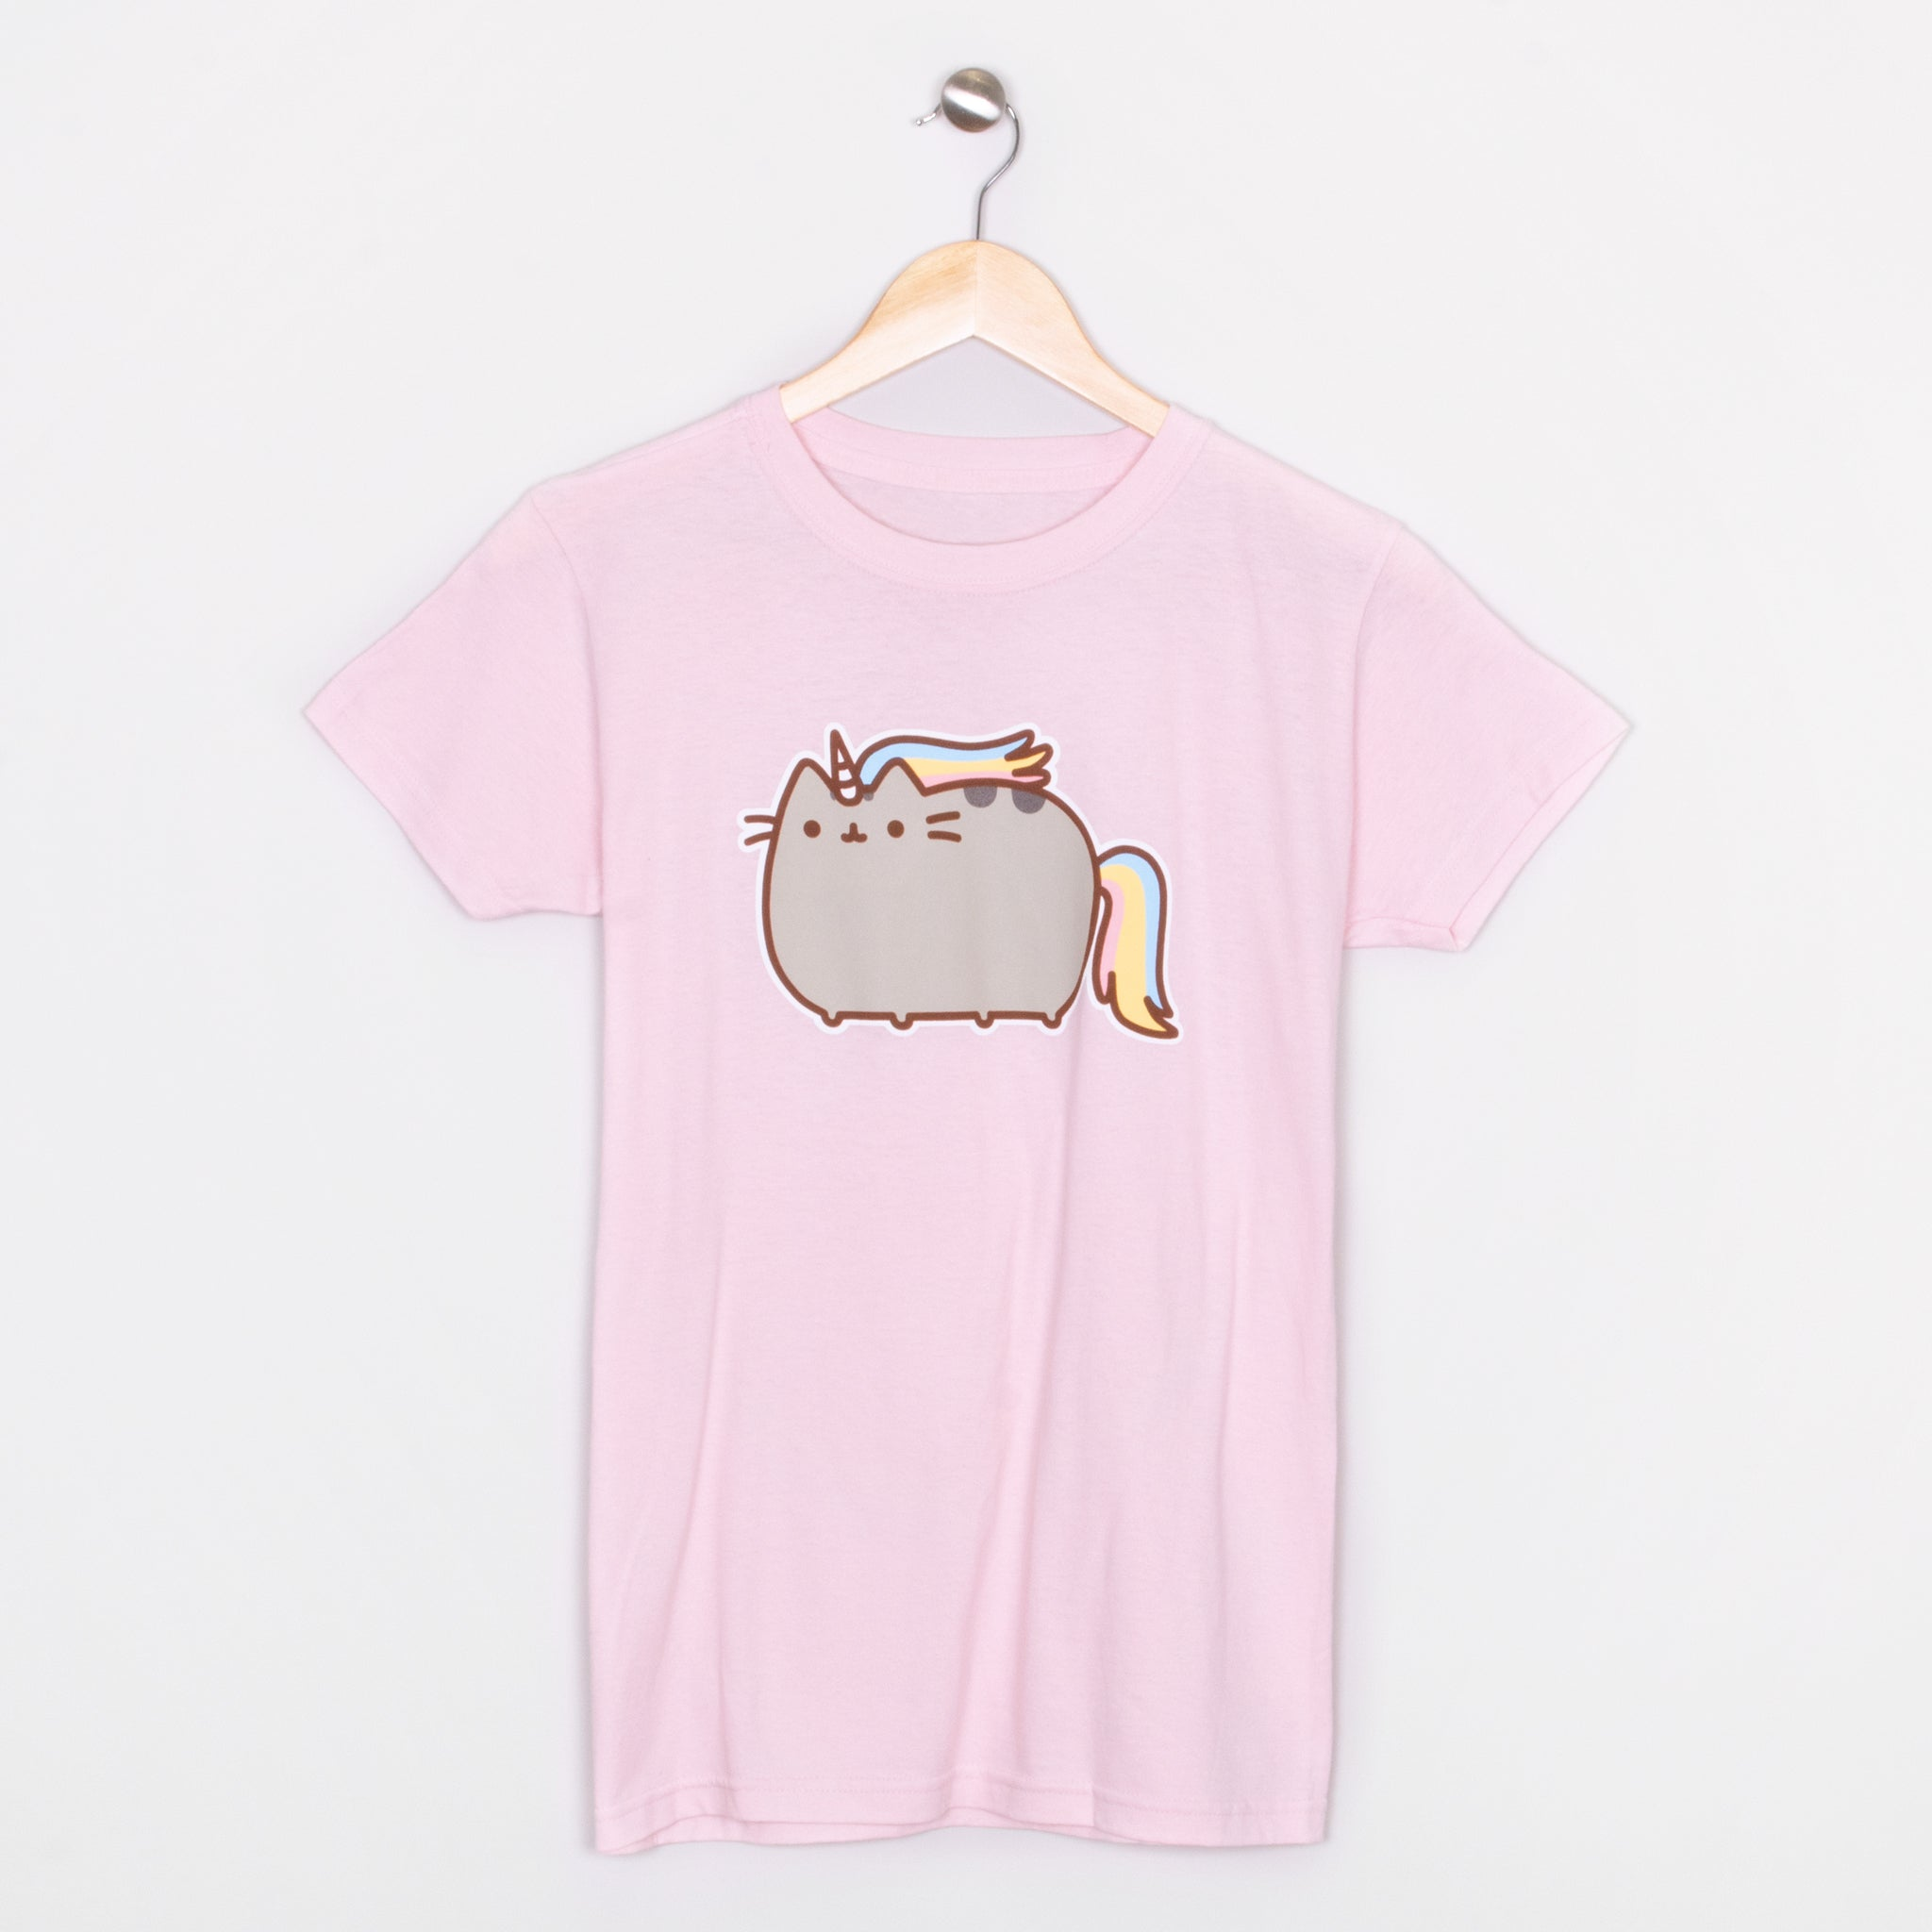 pusheen t-shirt shirt apparel unicorn pusheenicorn cute cat culturefly